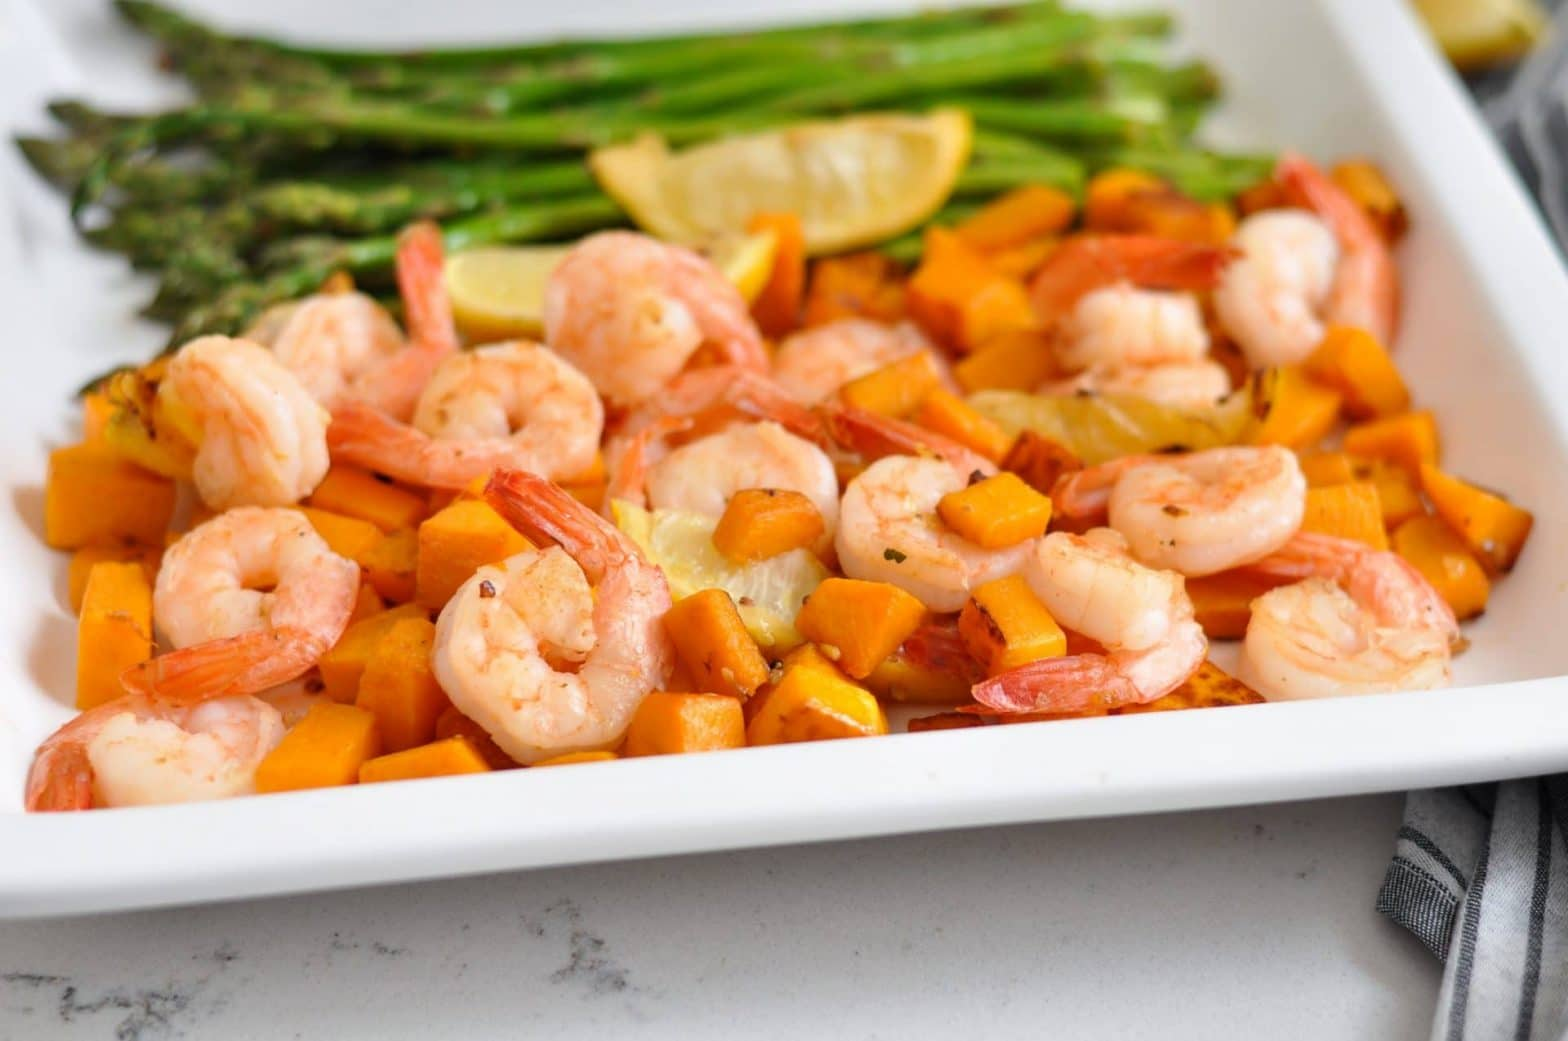 Shrimp and Squash Skillet 30 Minute Meal (Whole30 + Paleo)